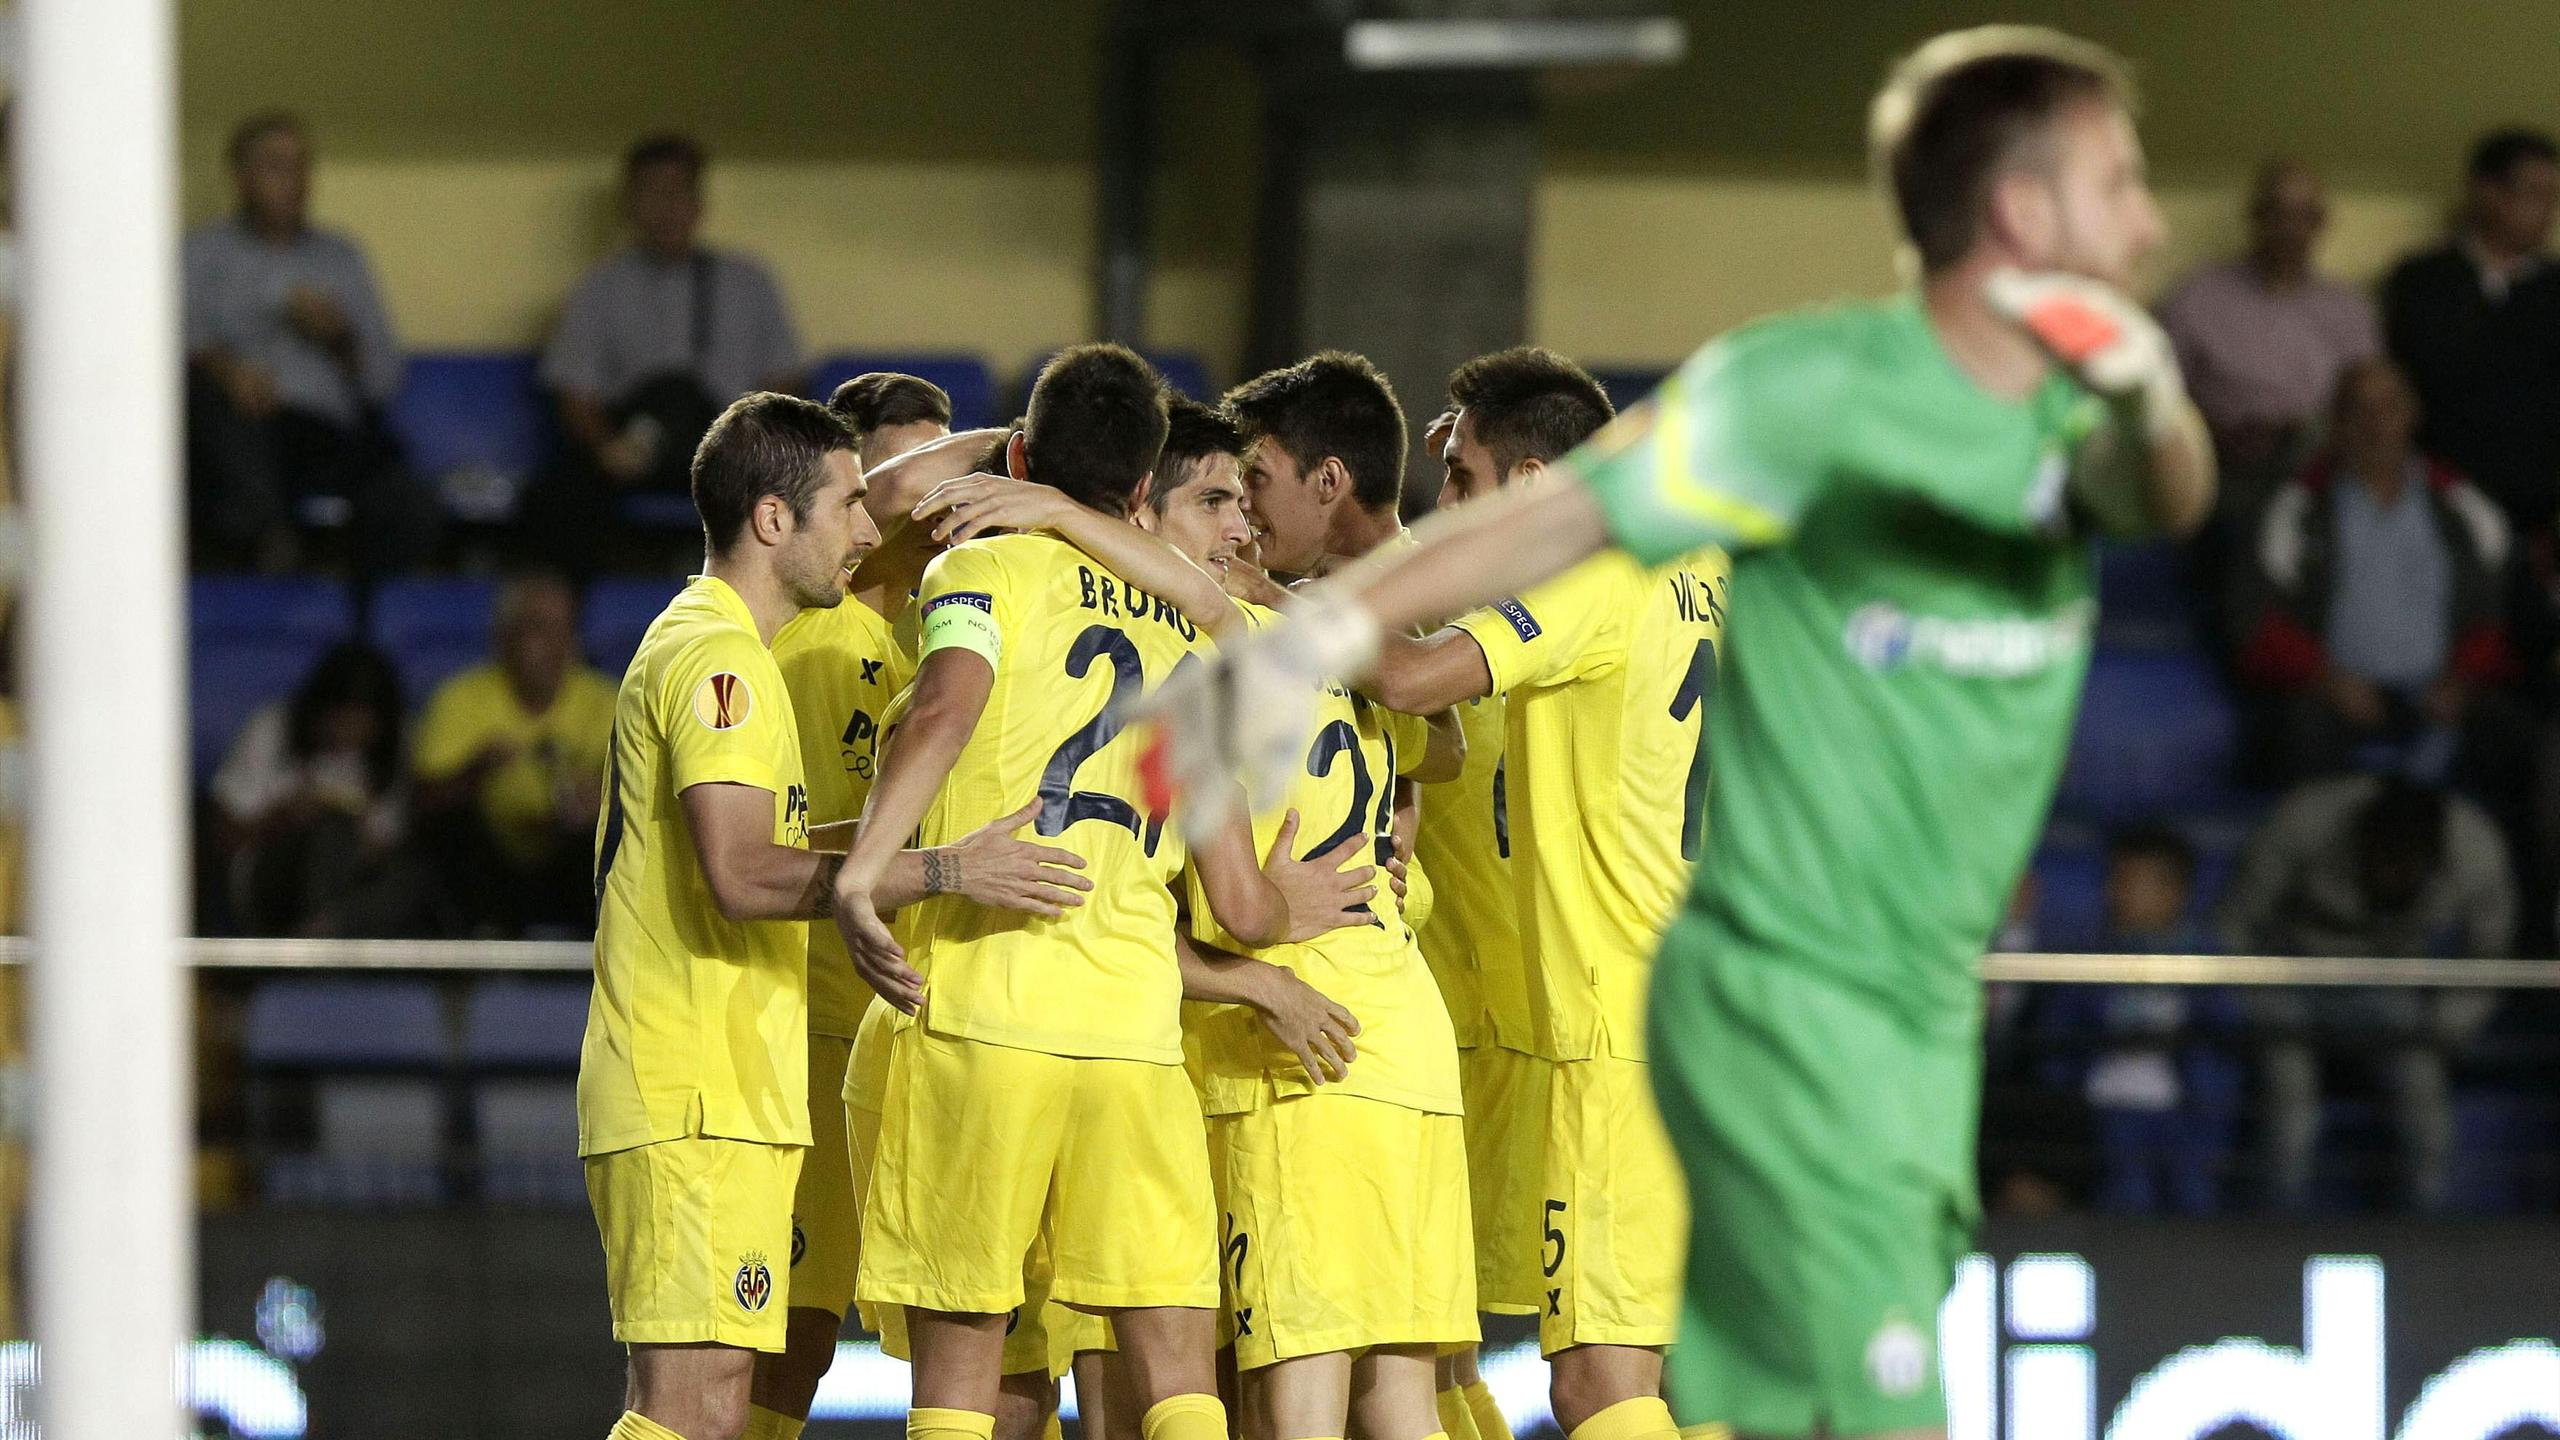 Video: Villarreal vs Zurich